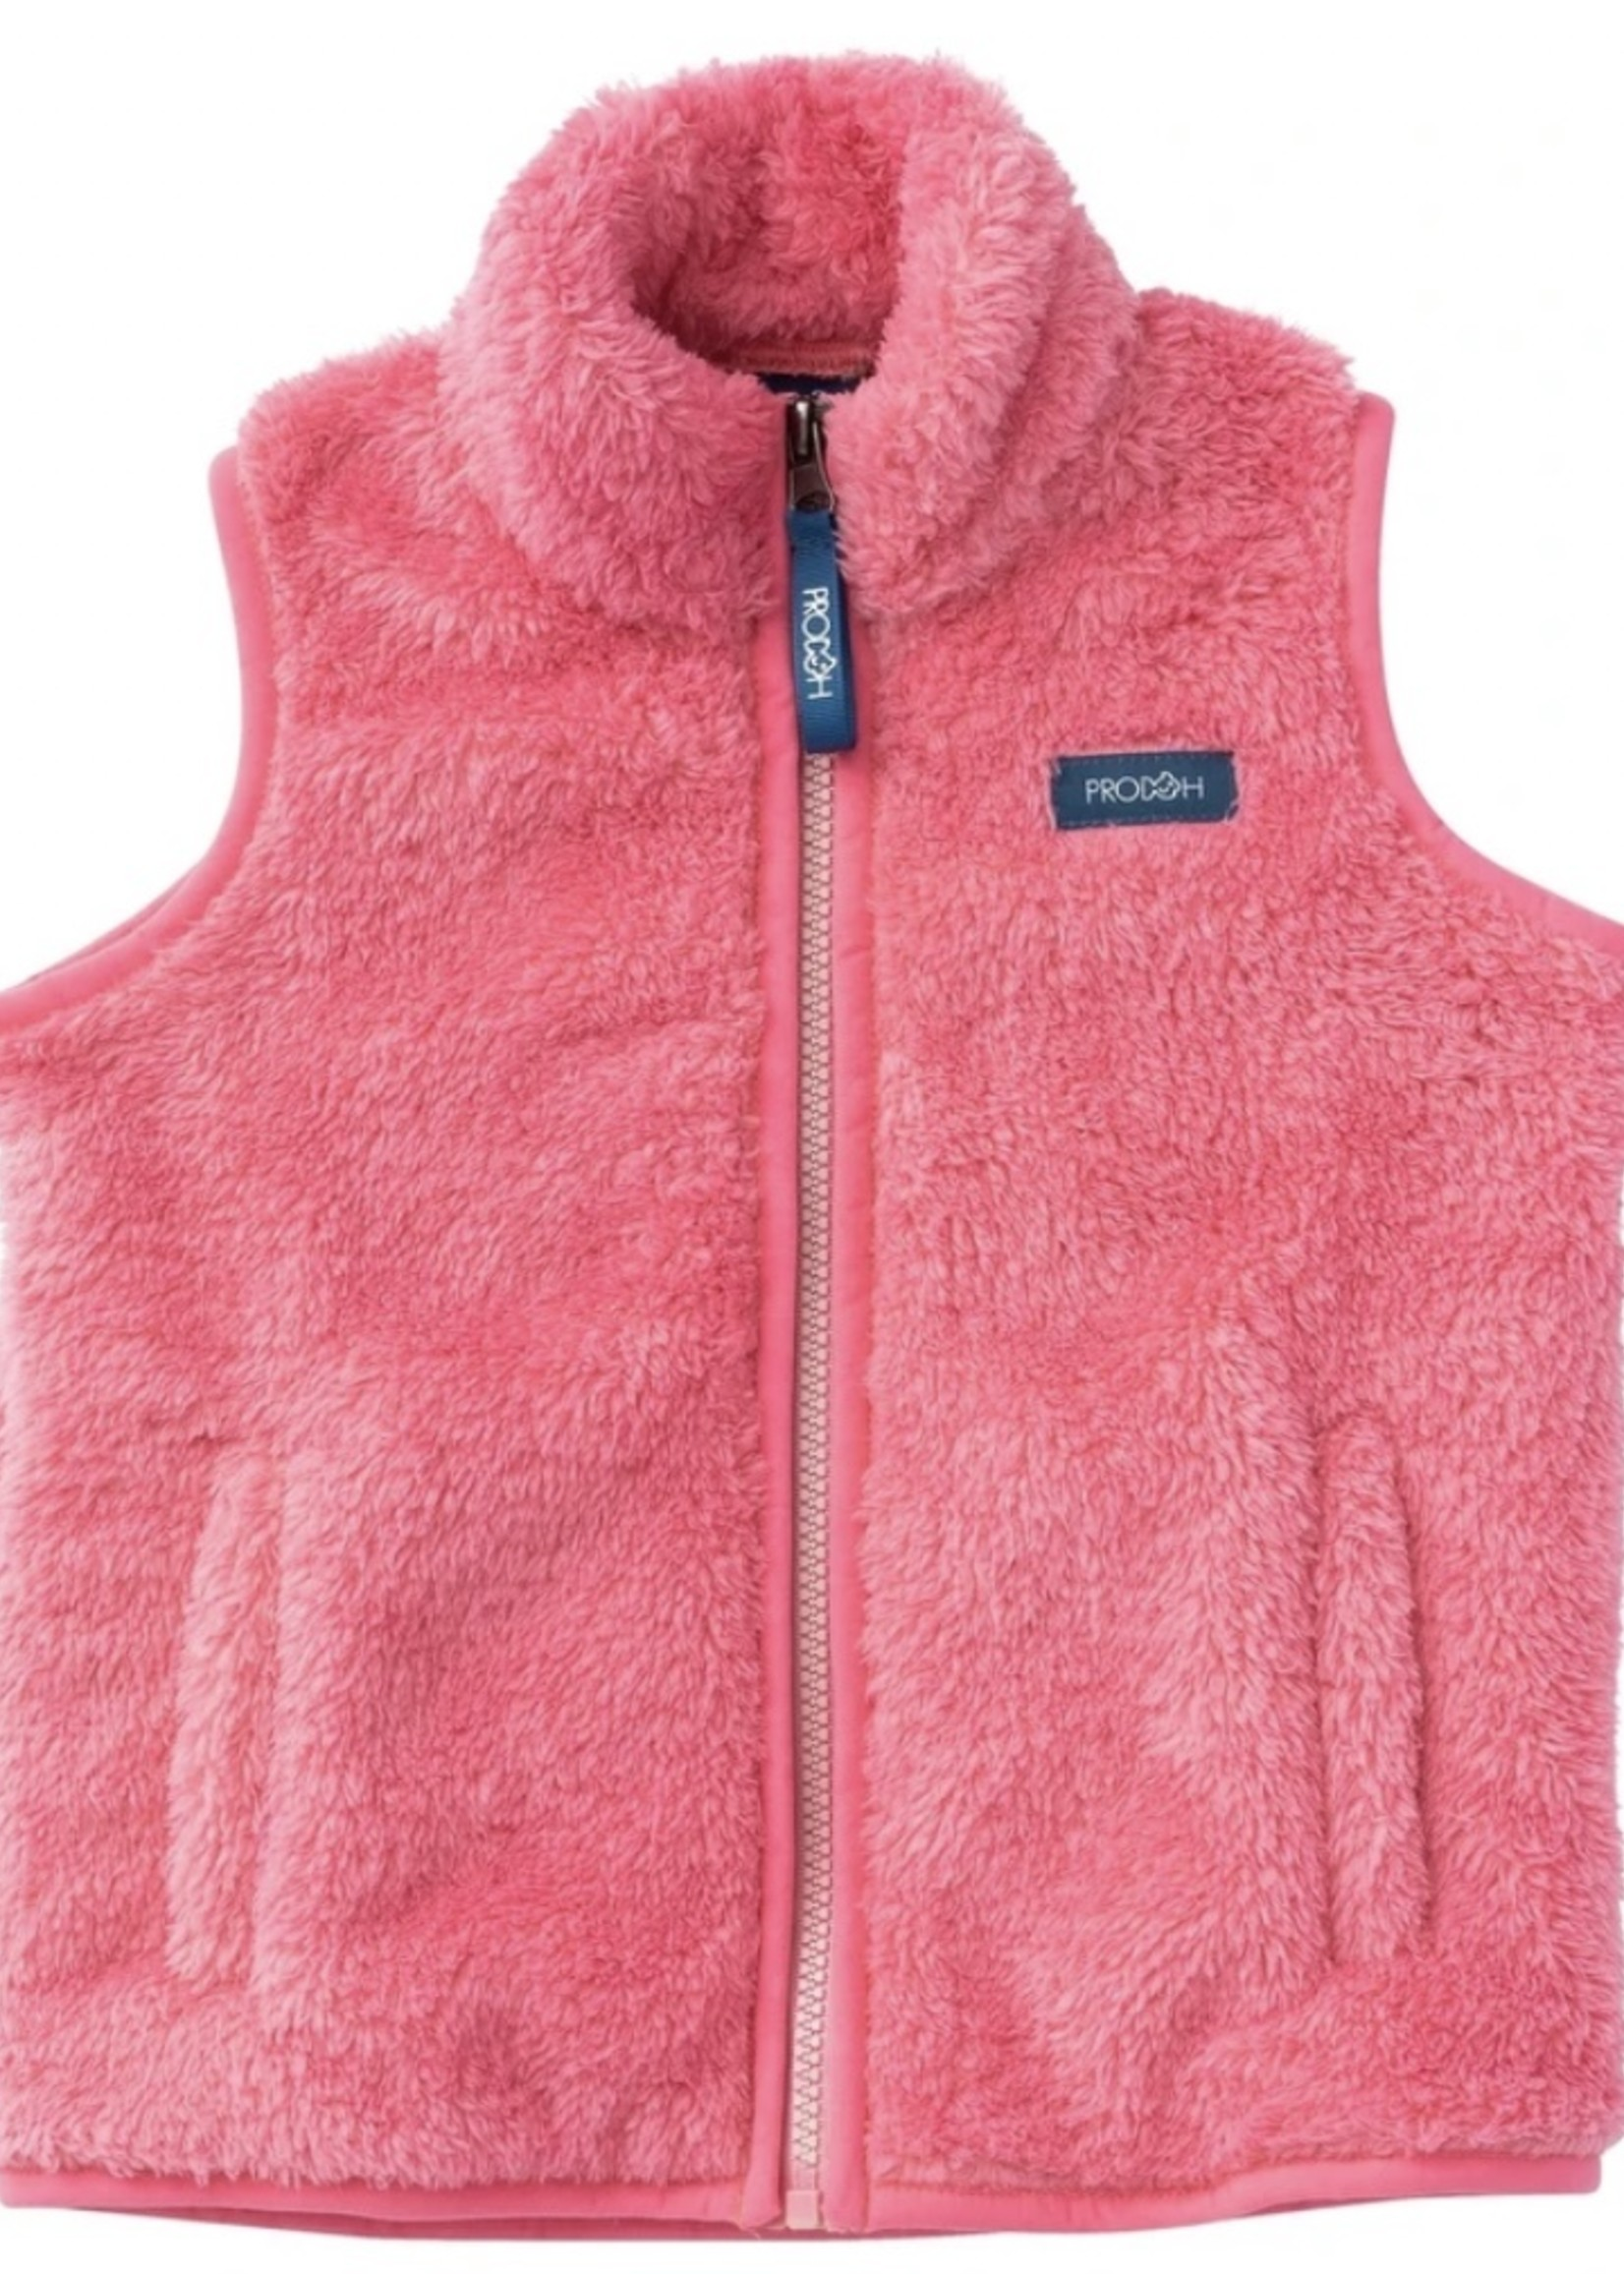 Girl's Solid Sherpa Vest - Morning Glory